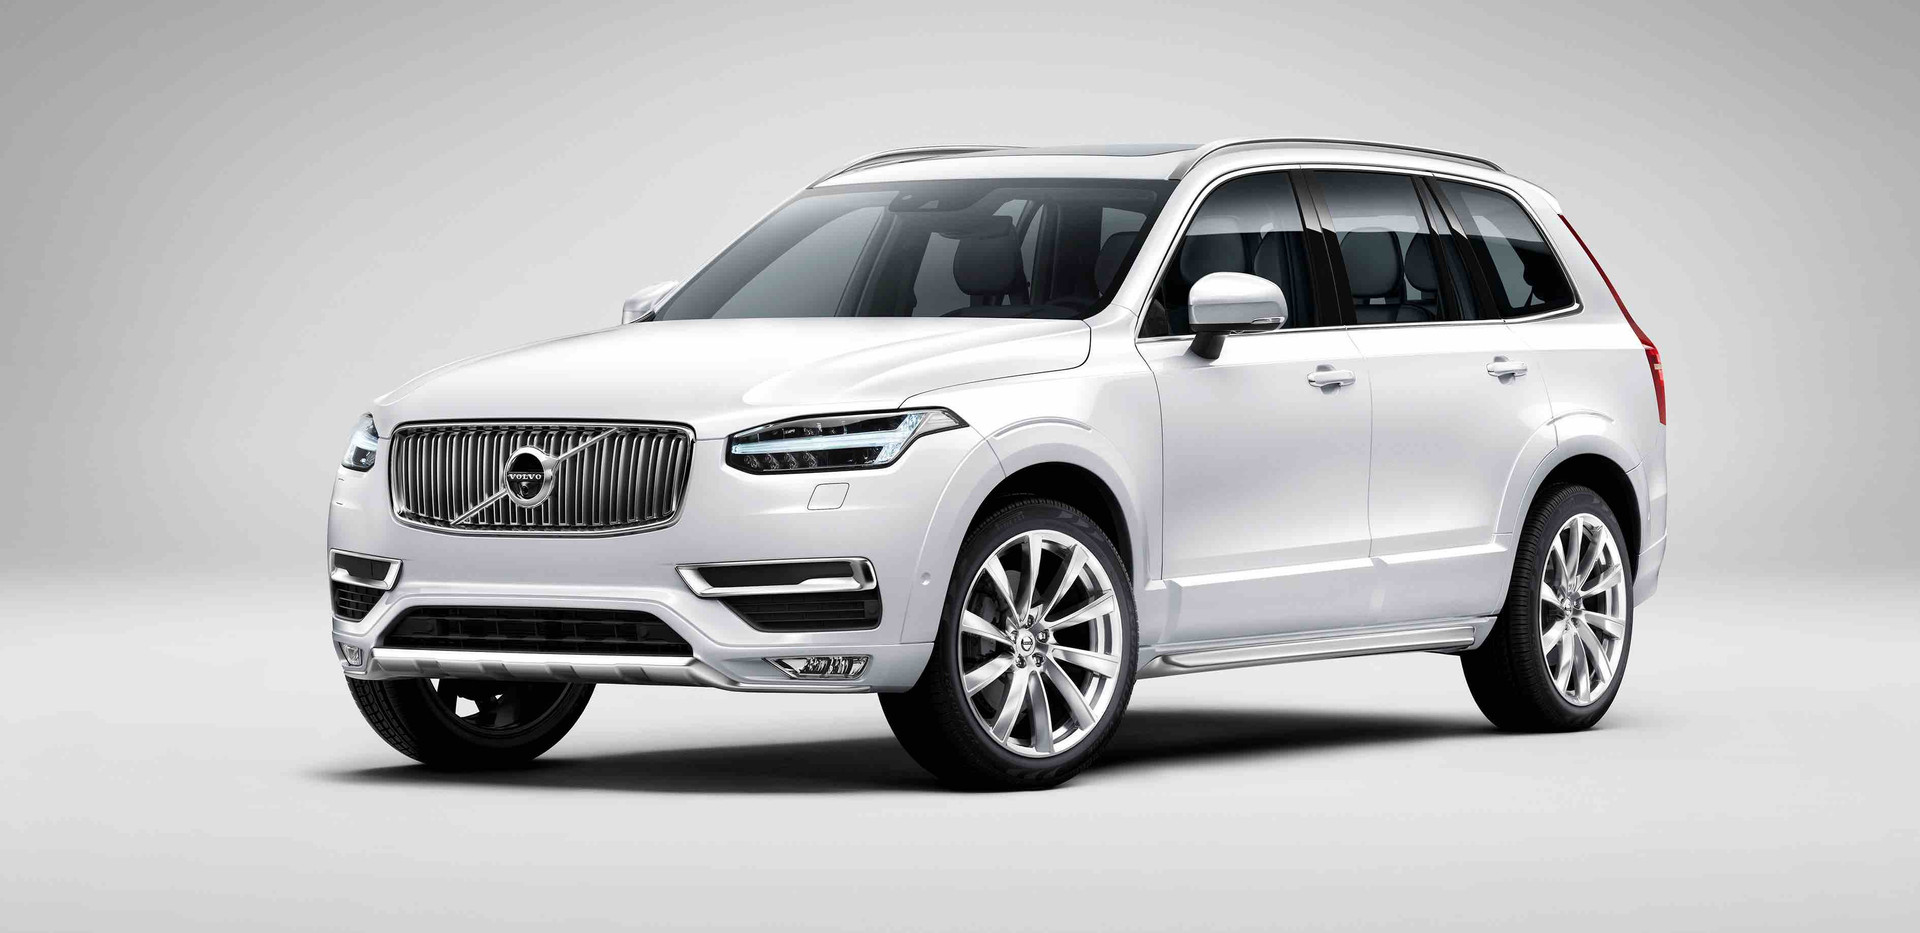 150080_The_all-new_Volvo_XC90.jpg